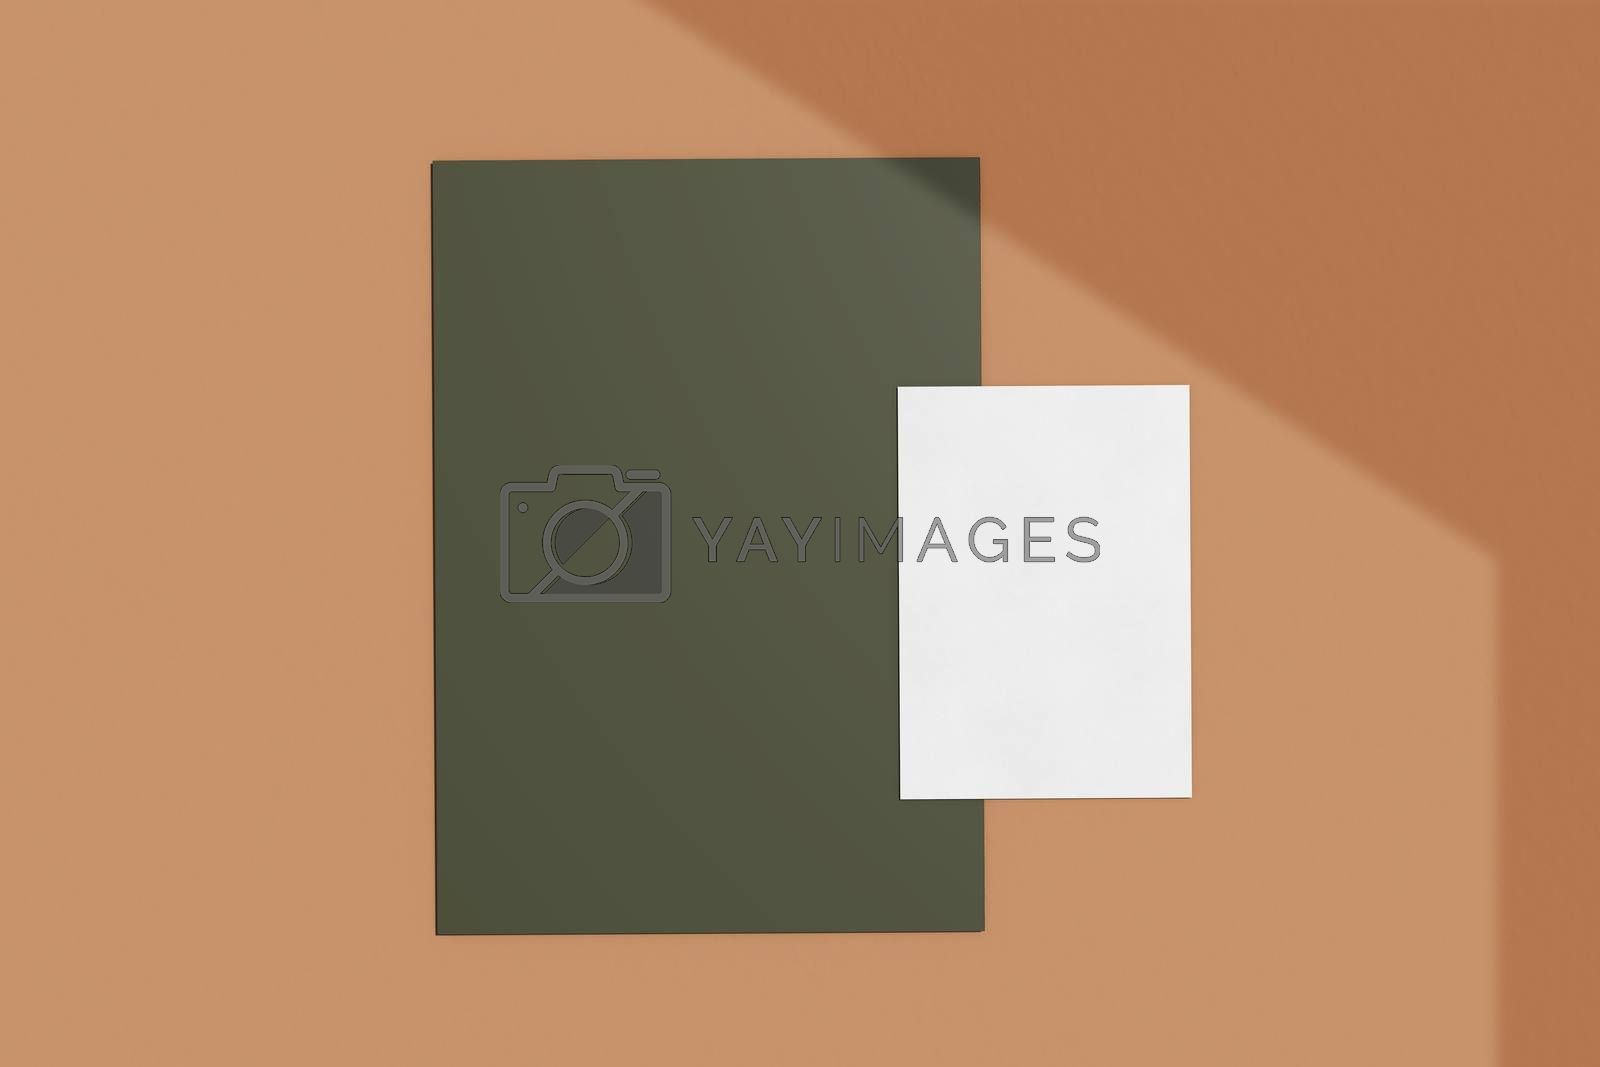 Branding identity mockup of blank business card and paper natural lighting overlay shadows, minimal layout style